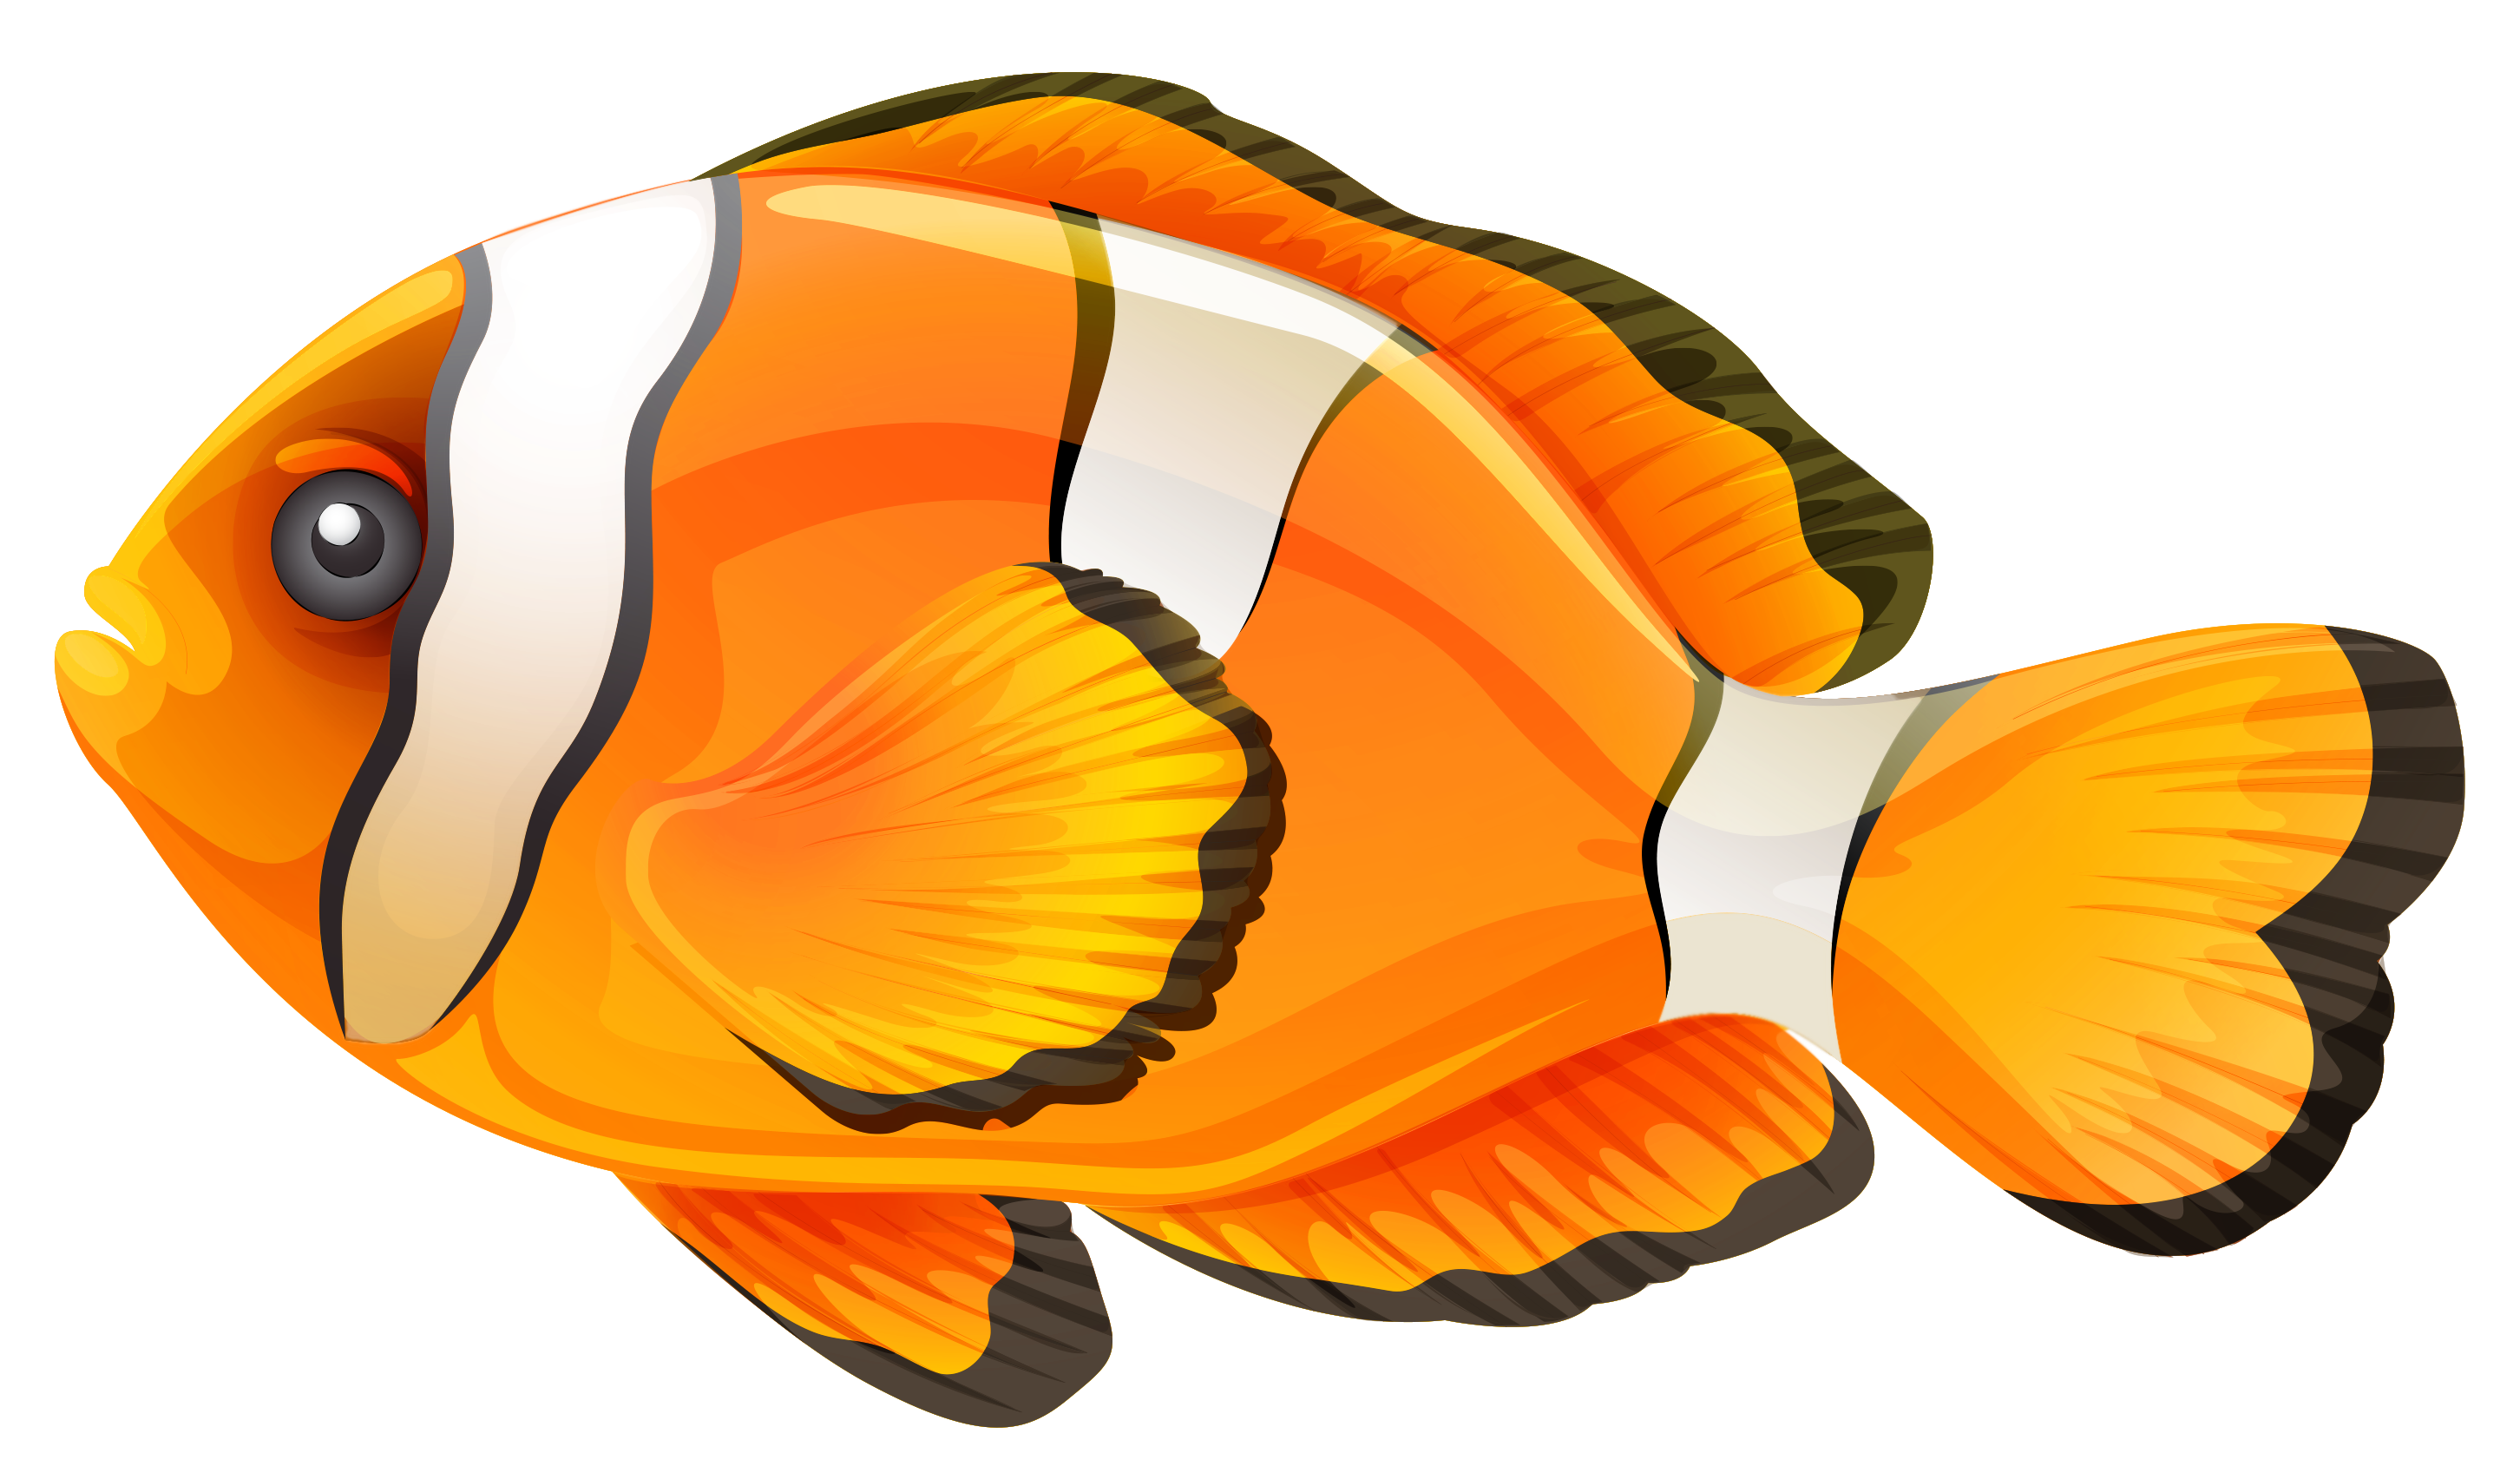 Clownfish free printable coloring page and clipart clown fish.